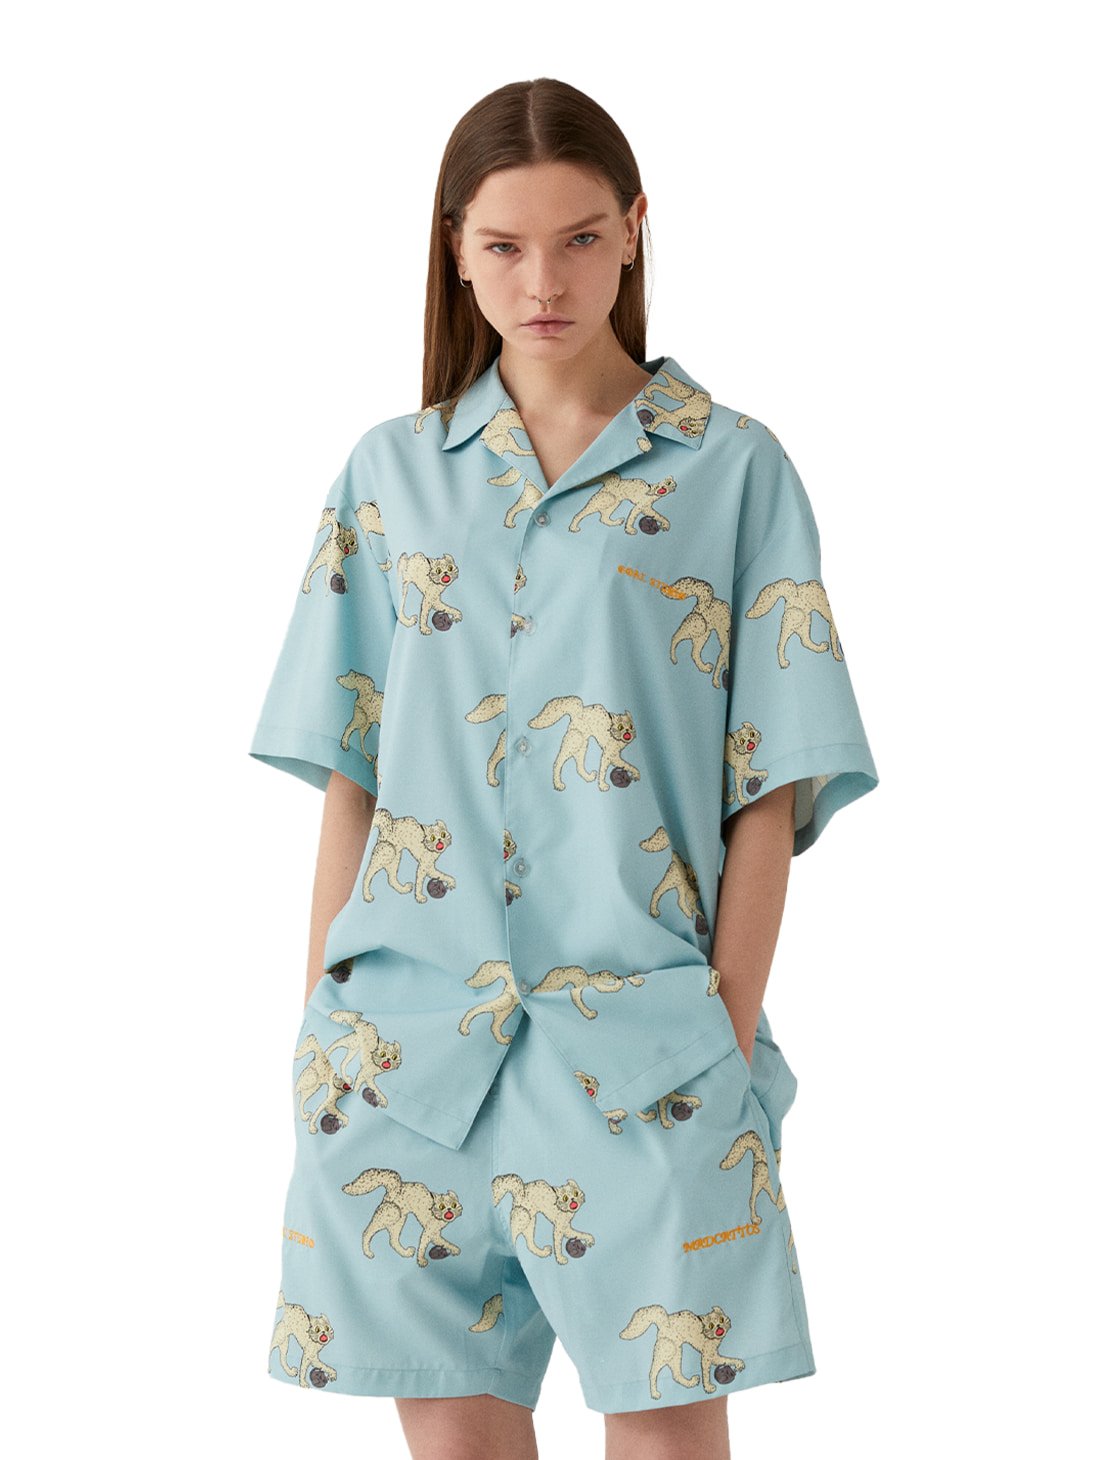 MC ALL OVER PATTERN HALF SHIRTS - LIGHT BLUE